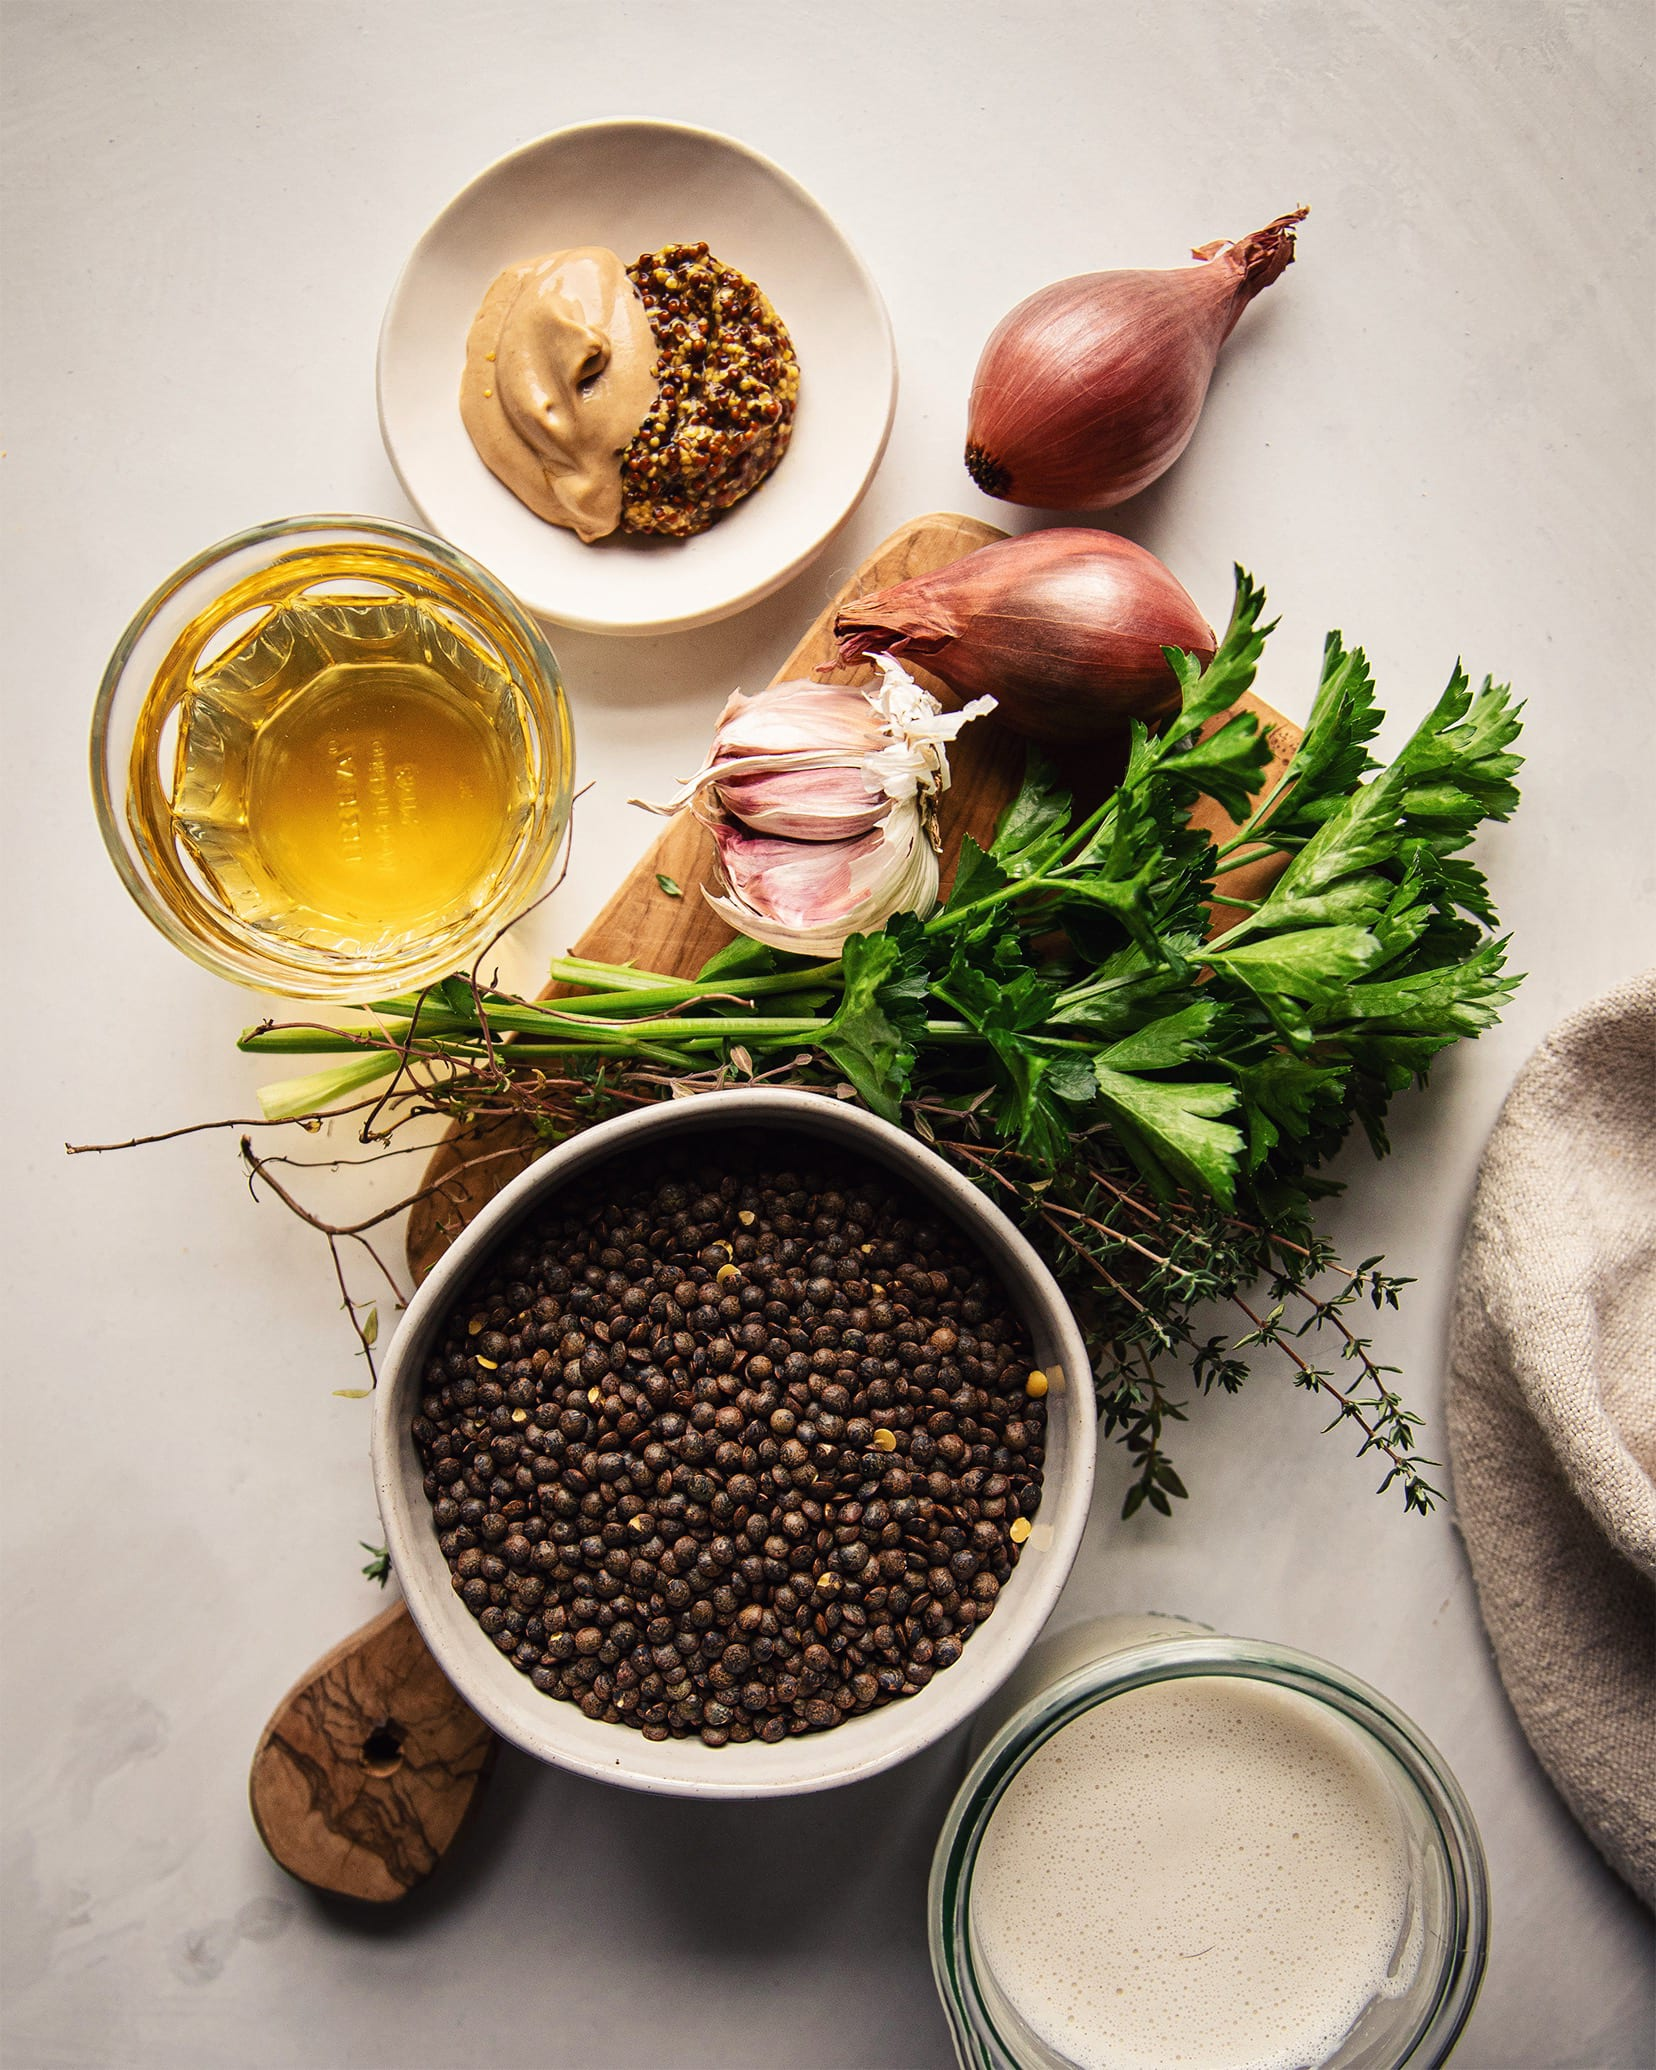 An overhead view of the ingredients used for a cooked lentil dish.  There are shallots, garlic, old-fashioned and Dijon mustard, white wine, parsley, thyme, French lentils and a cashew cream.